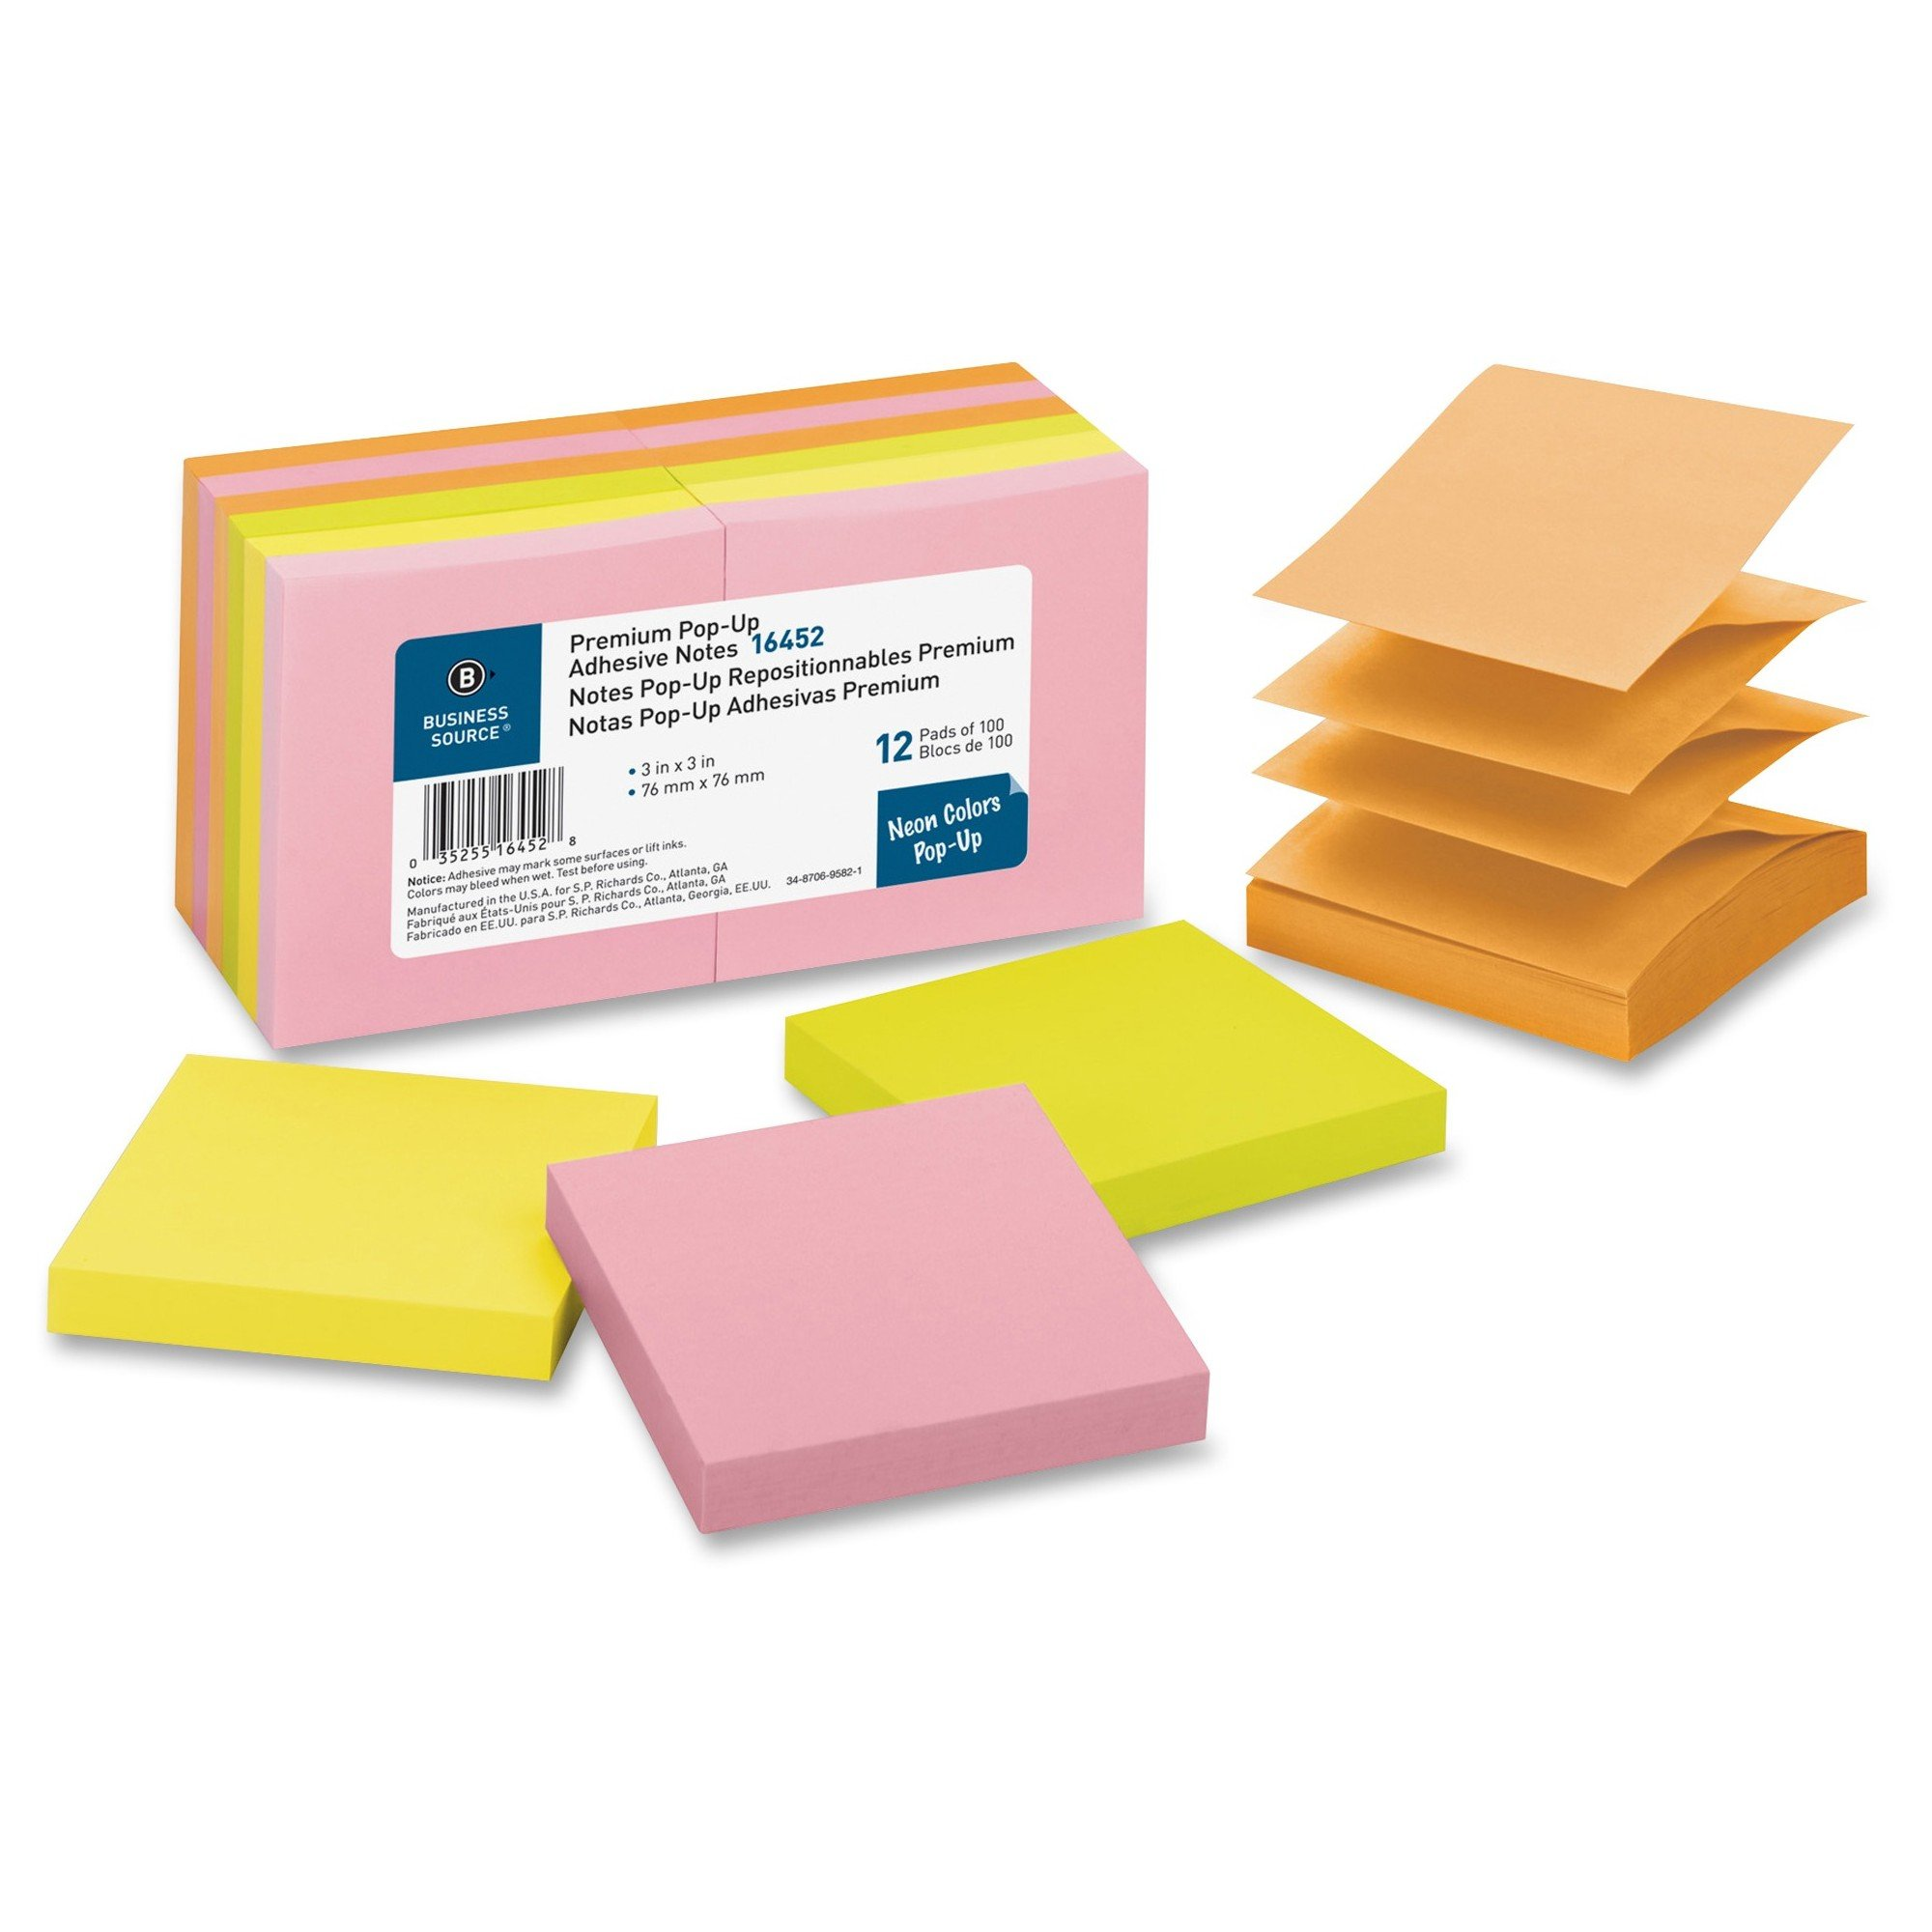 "Business Source (Accordion) Reposition Pop-up Adhesive Notes 3"" x 3"" 12/Pack"